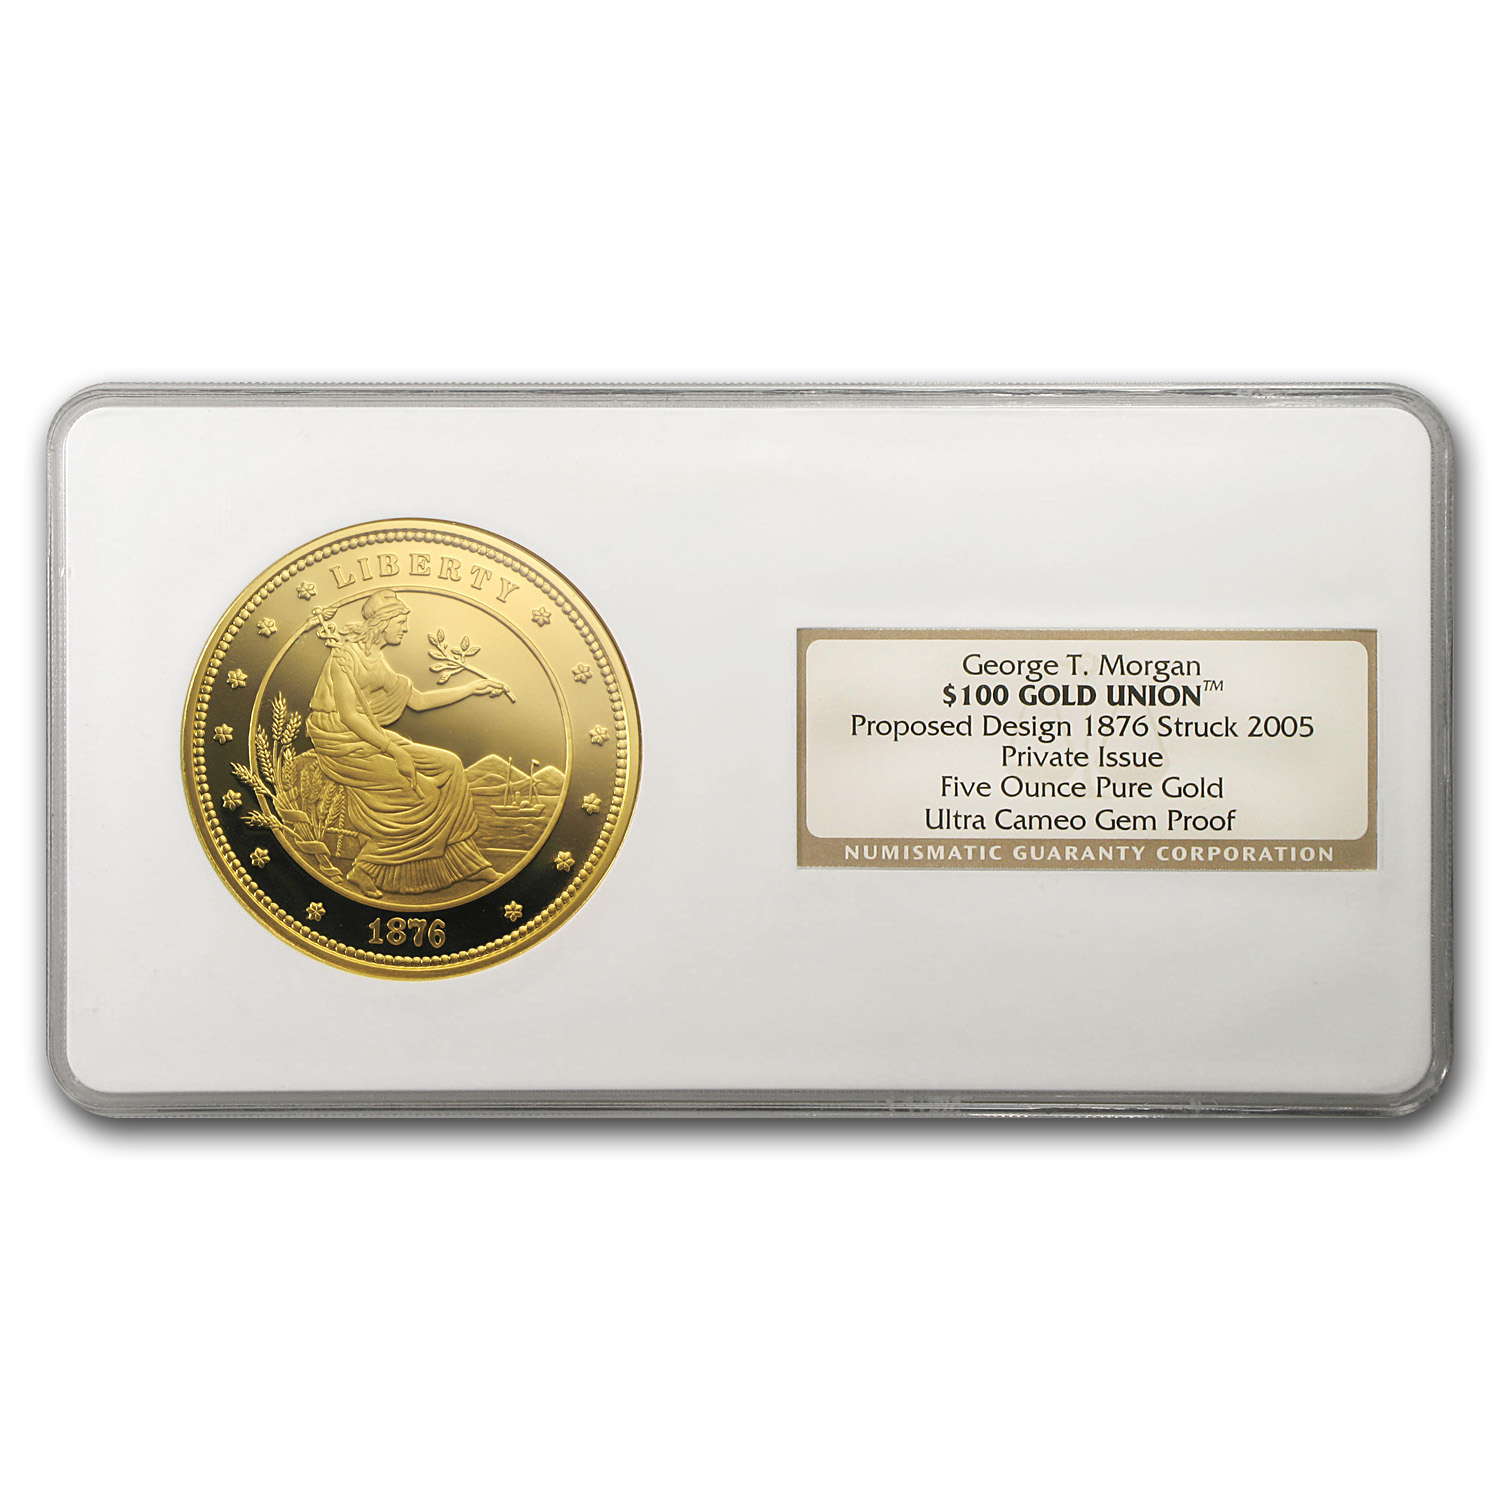 5 oz Gold Round - $100 Gold Union NGC (Gem Proof)